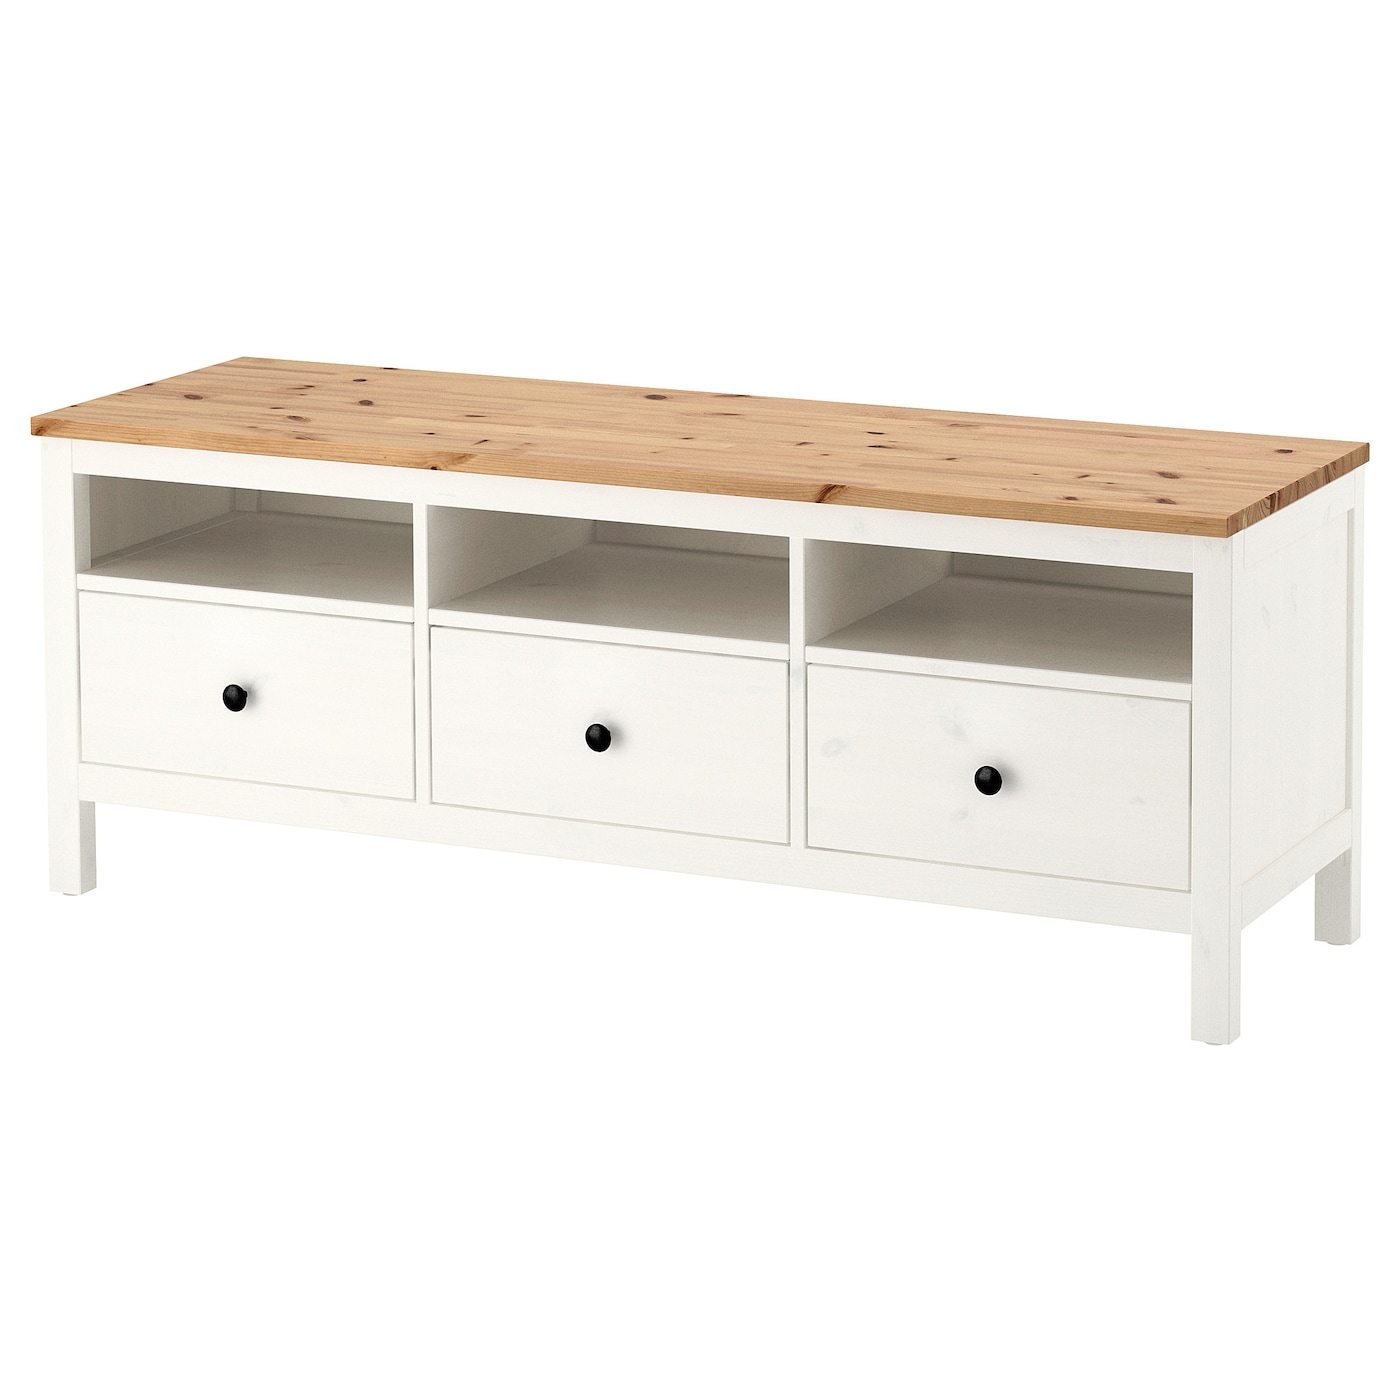 IKEA HEMNES TV bench Solid wood has a natural feel.